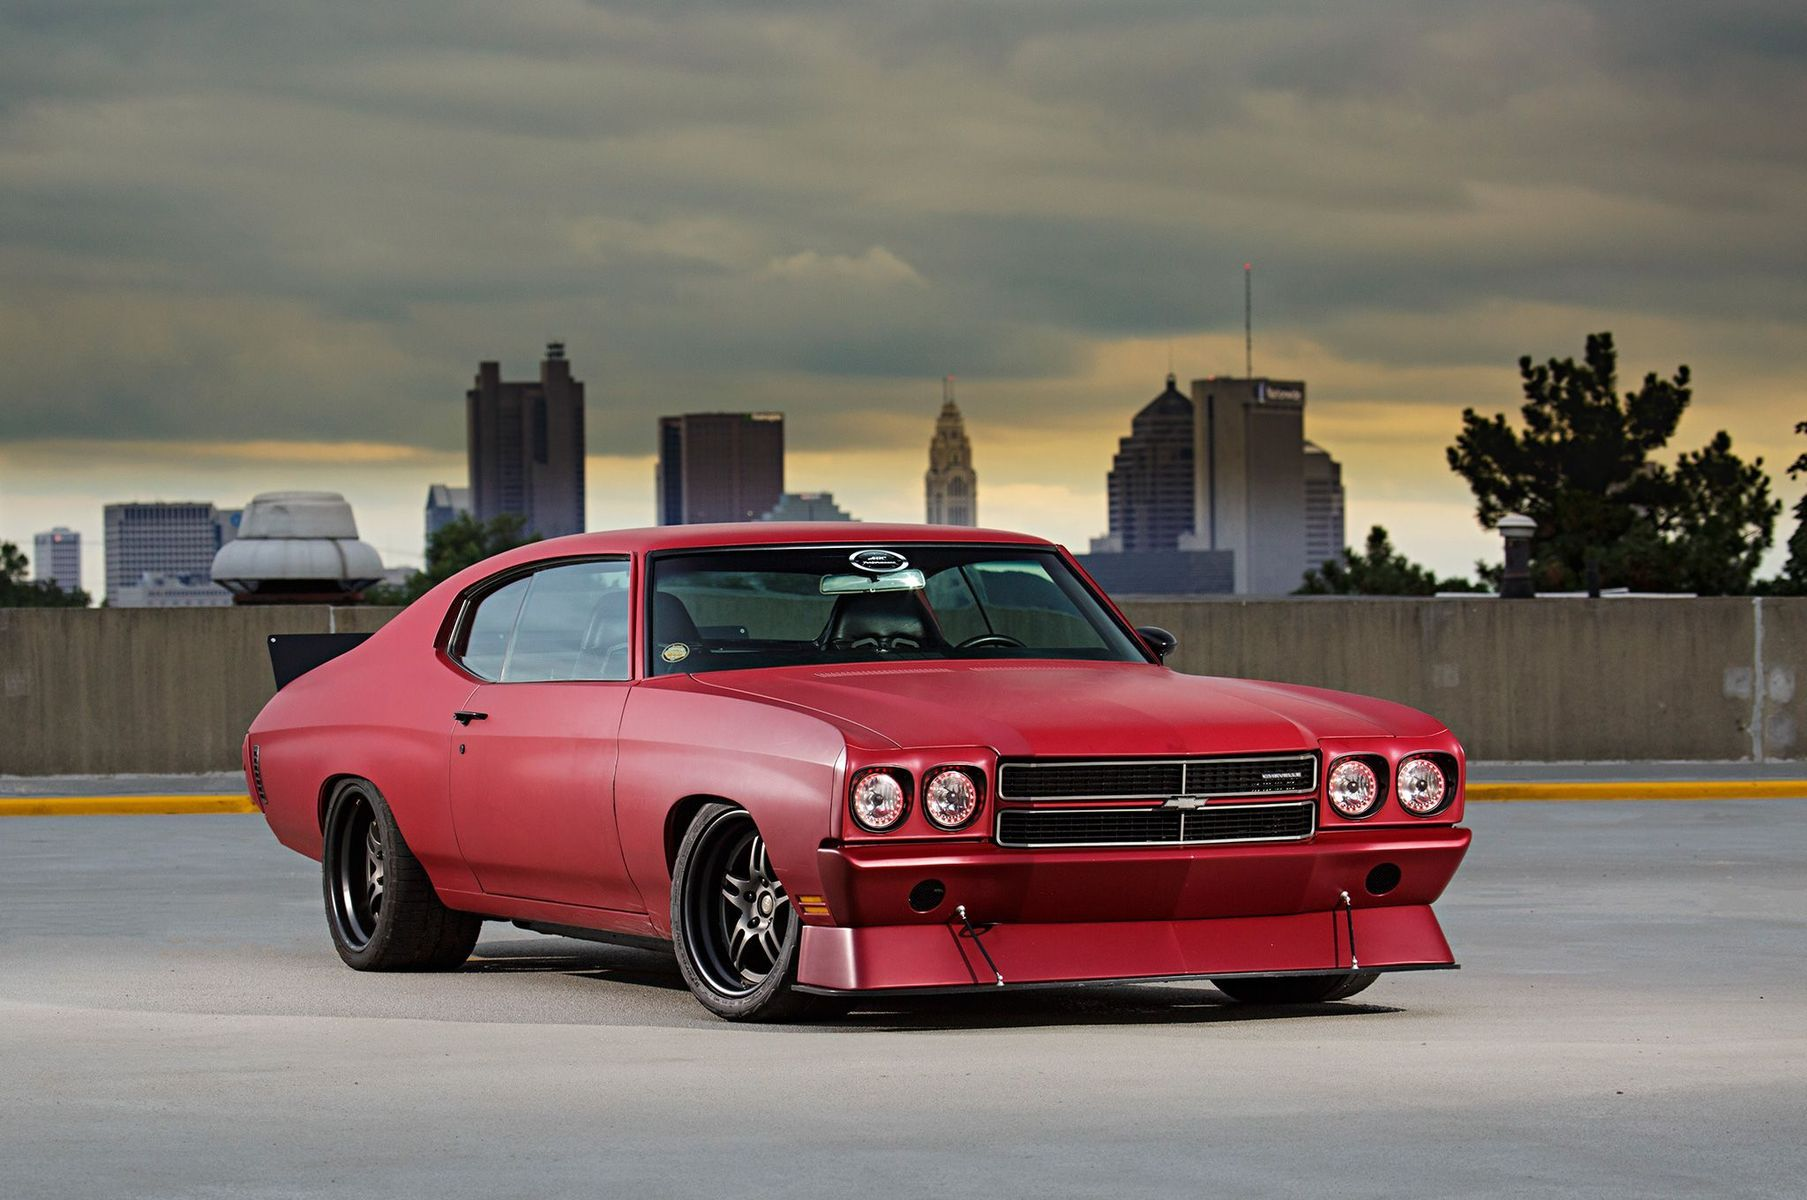 1970 Chevrolet Chevelle | Tony G's ABC Performance 1970 Chevelle on Forgeline DS3 Wheels